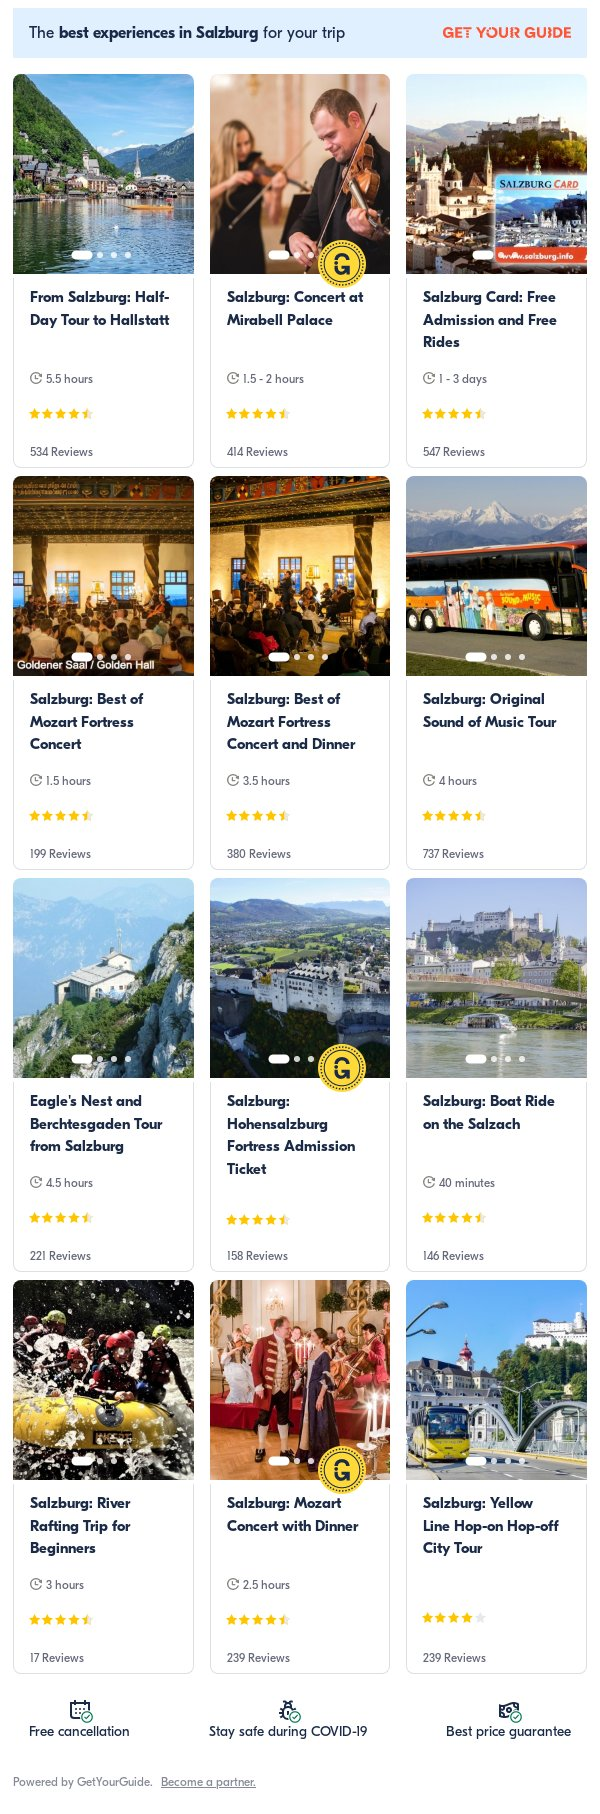 Salzburg: Get Your Guide